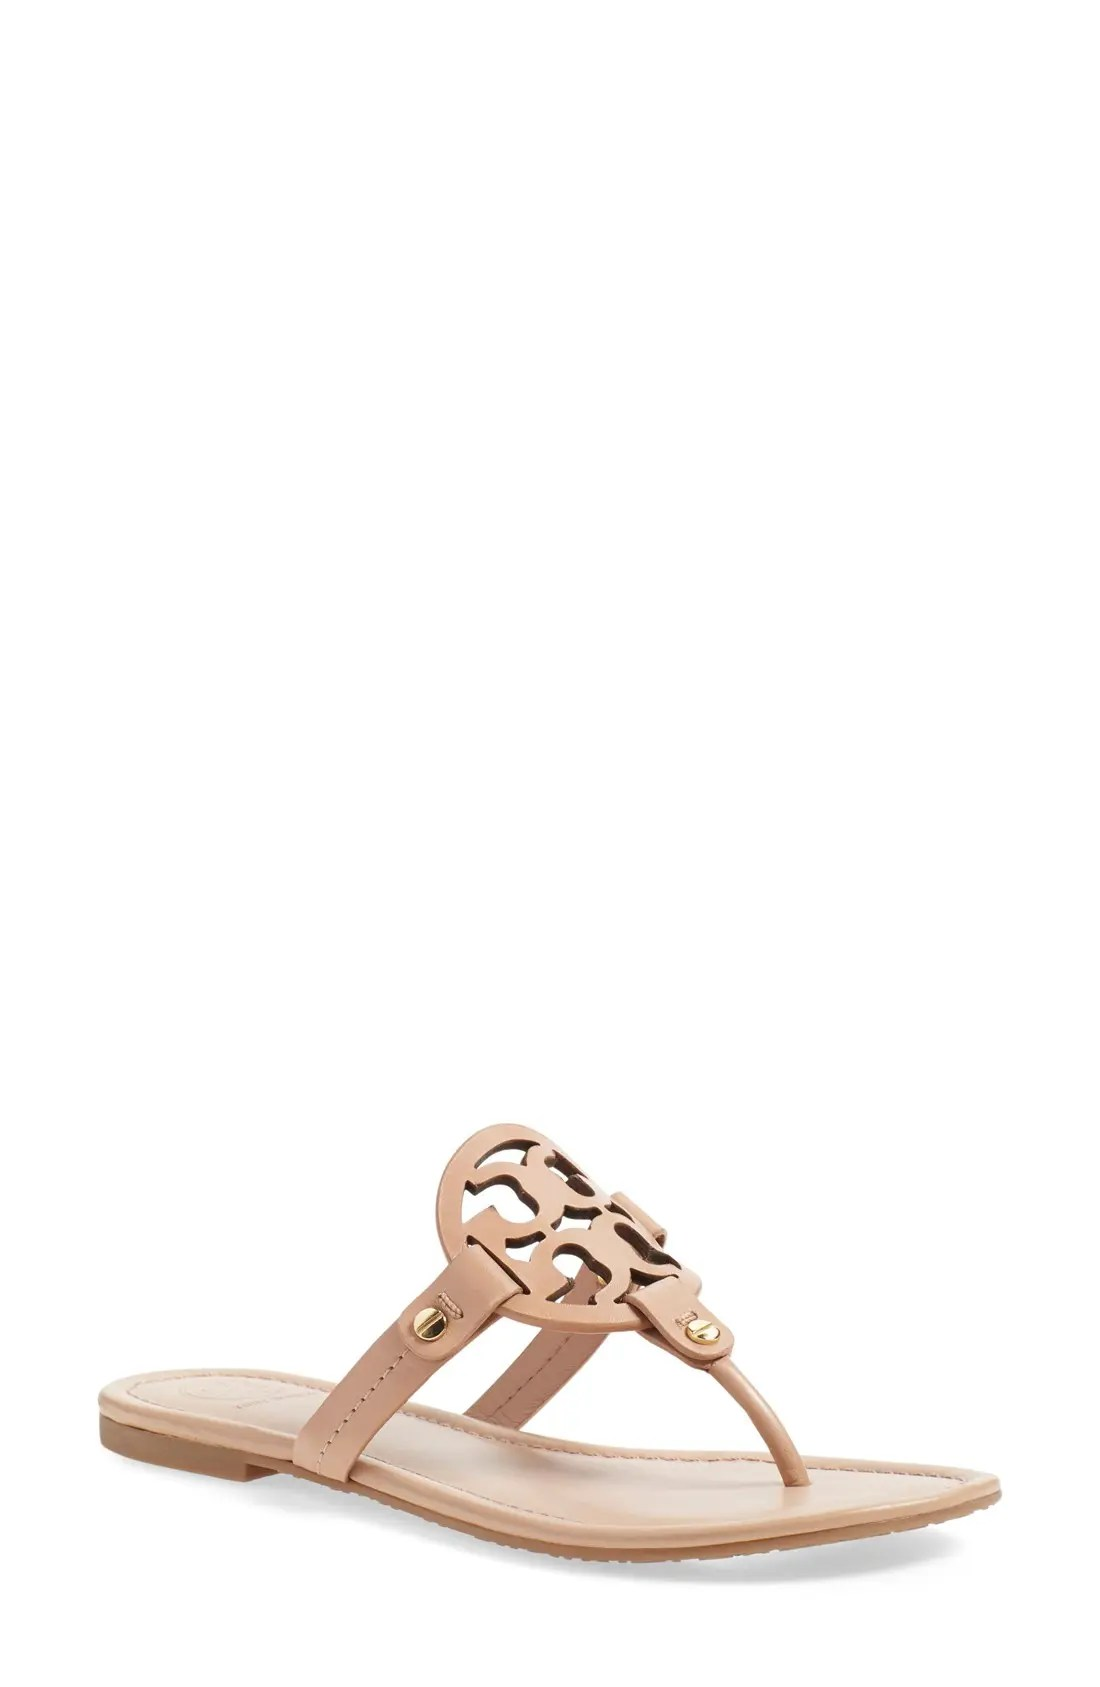 Image result for tory burch sandals